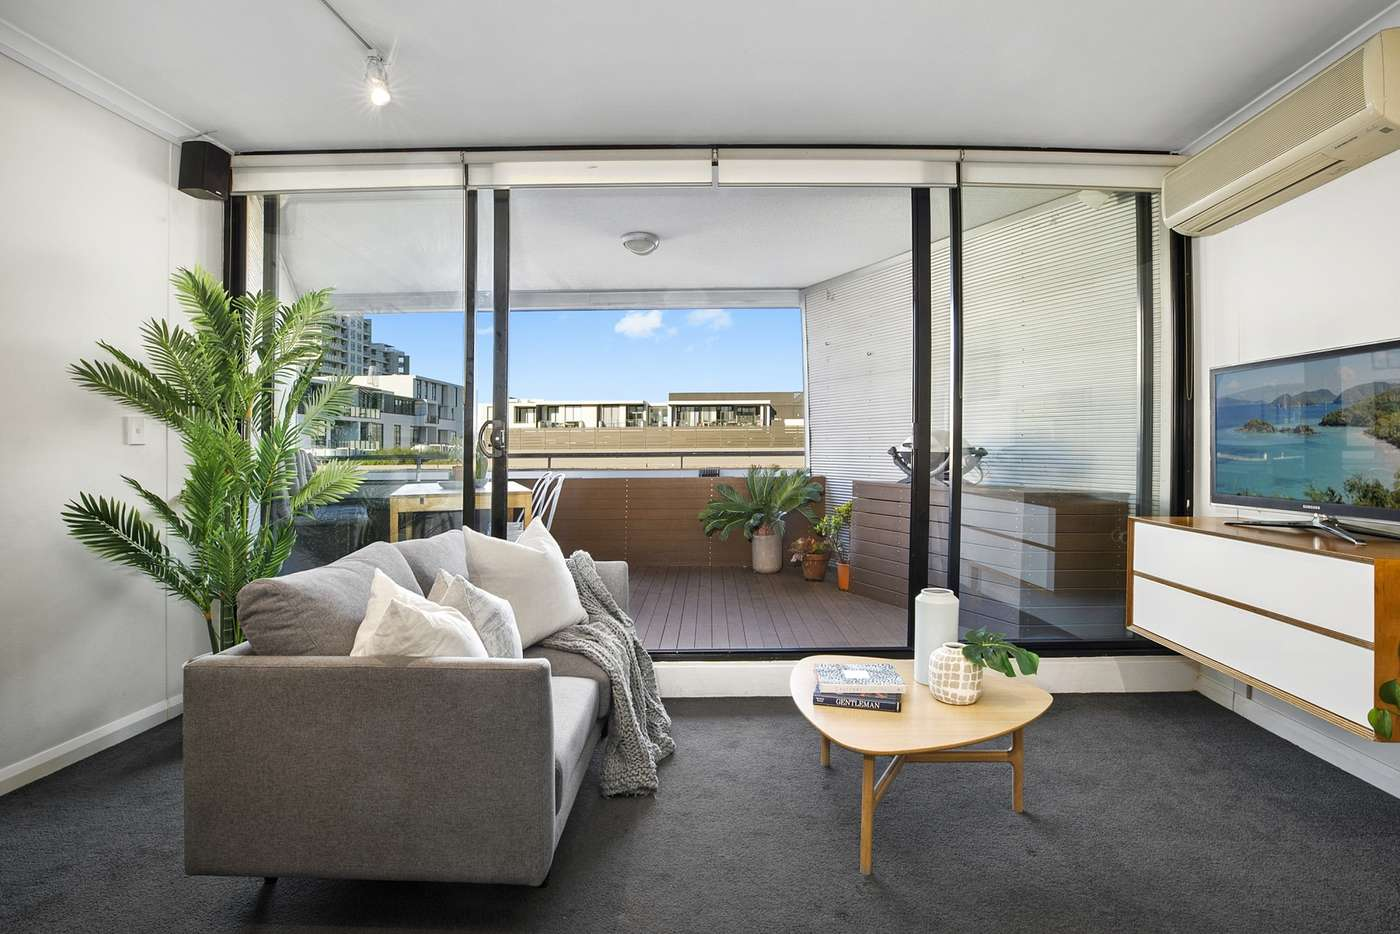 Sixth view of Homely apartment listing, 511/11a Lachlan Street, Waterloo NSW 2017